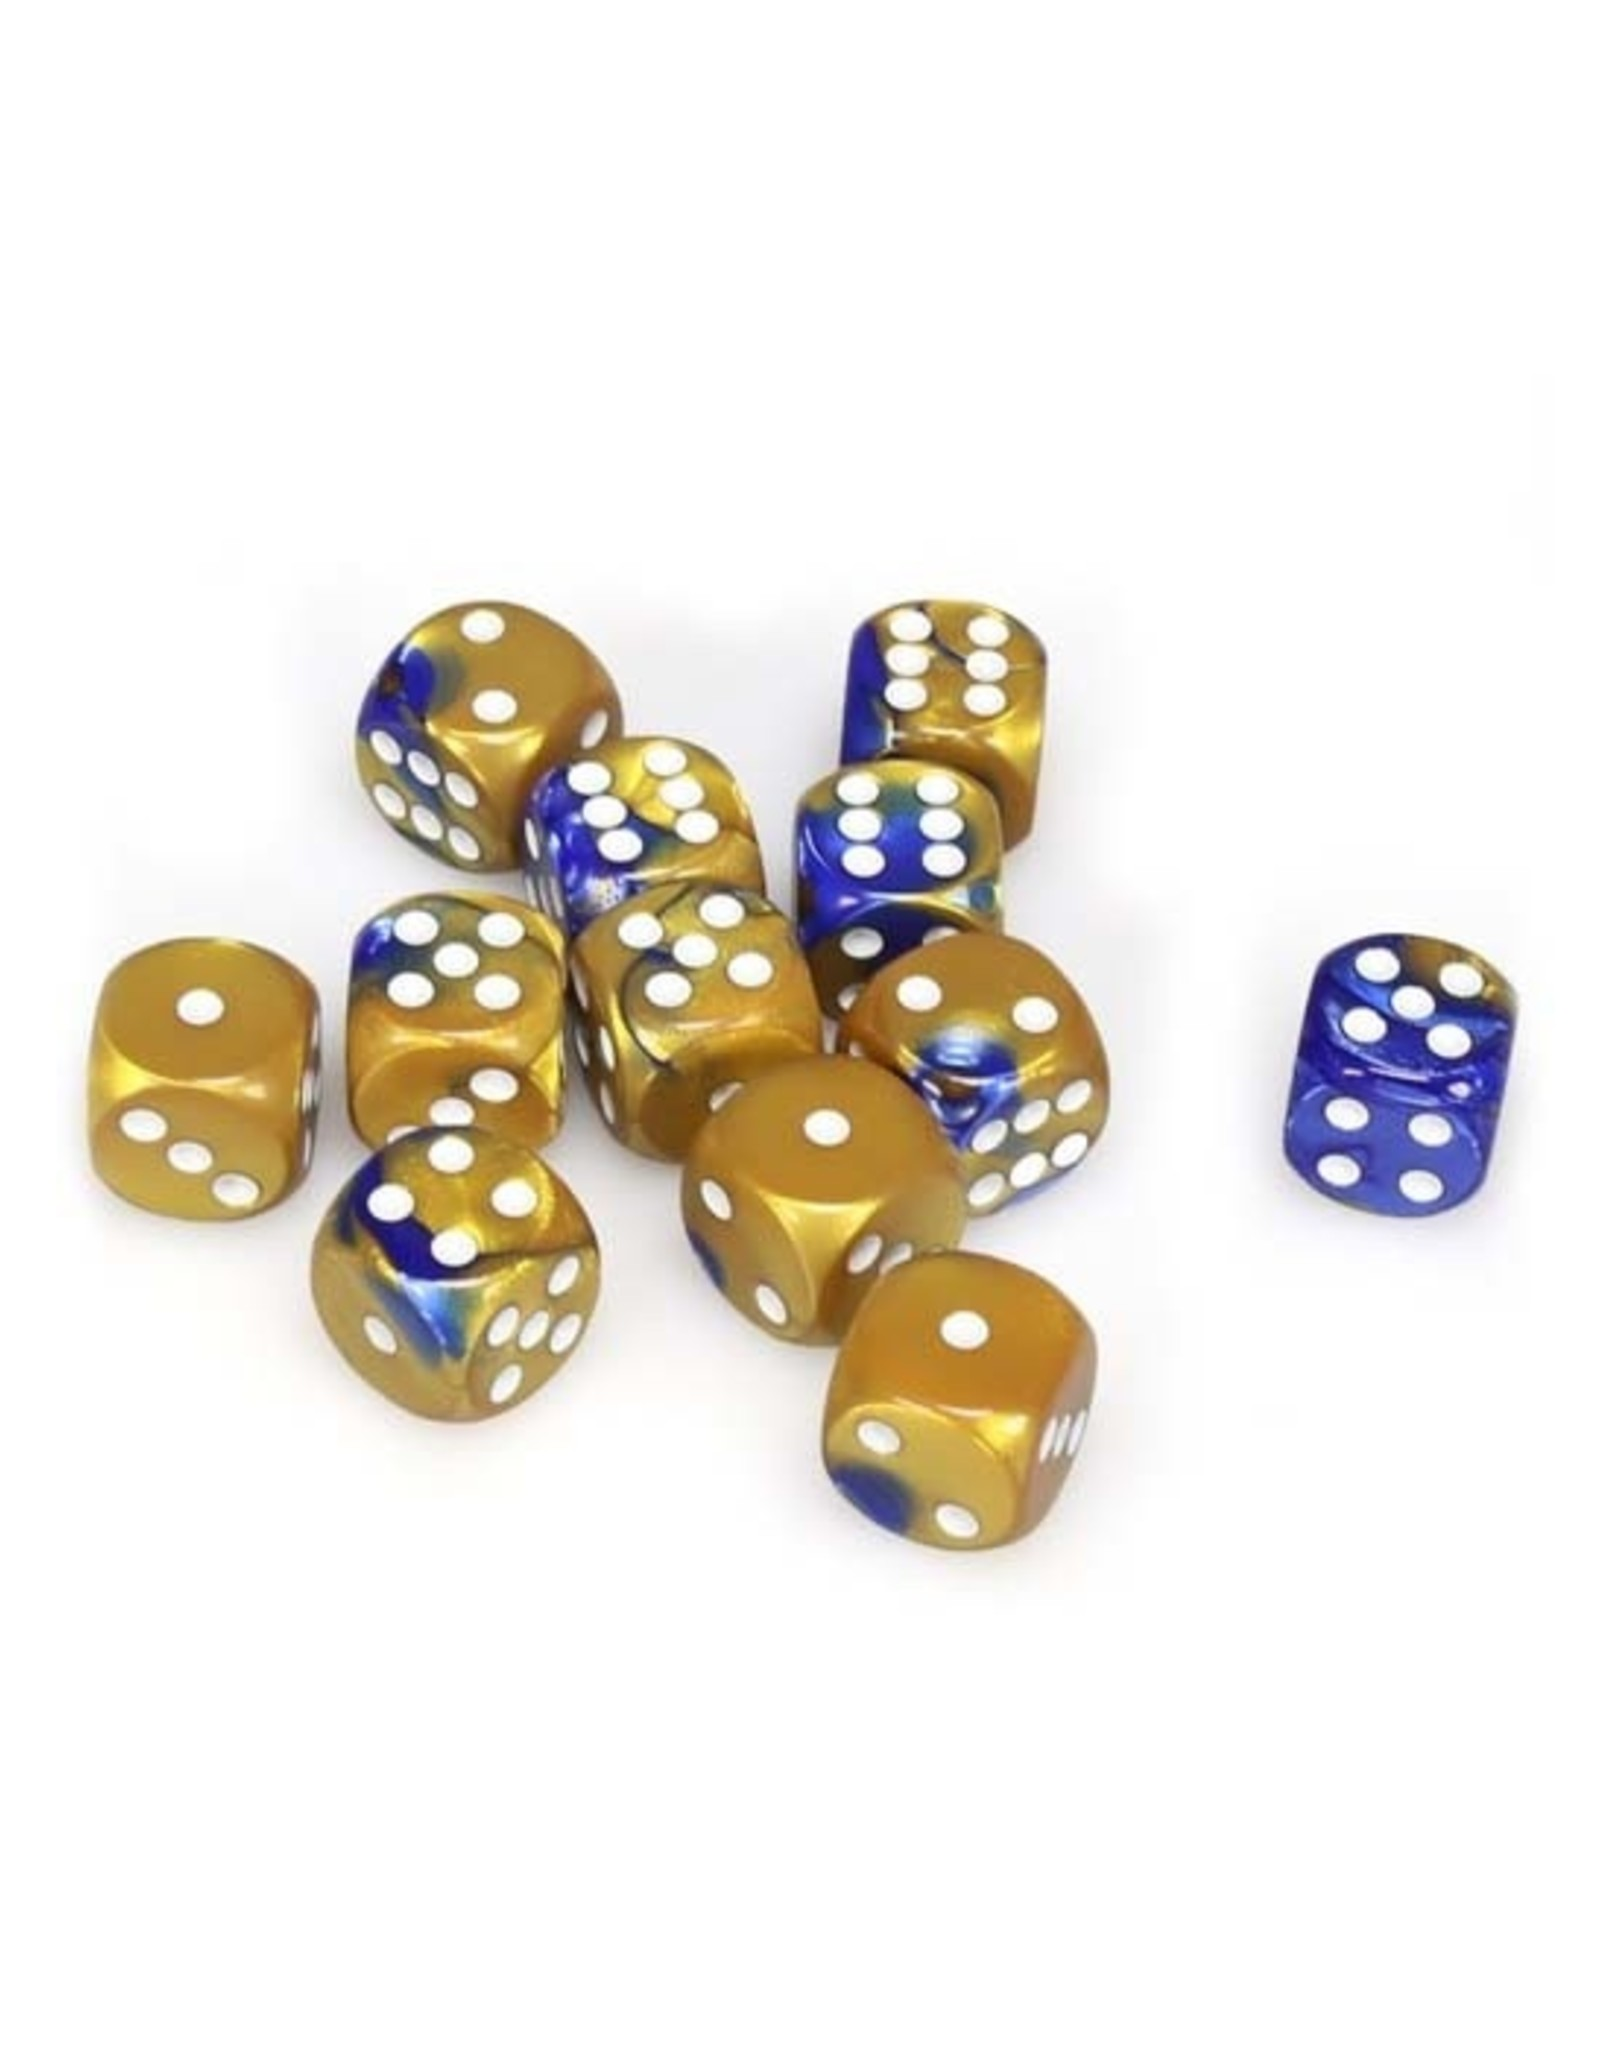 Chessex Chessex: 16mm D6 - Gemini - Blue-Gold w/ White